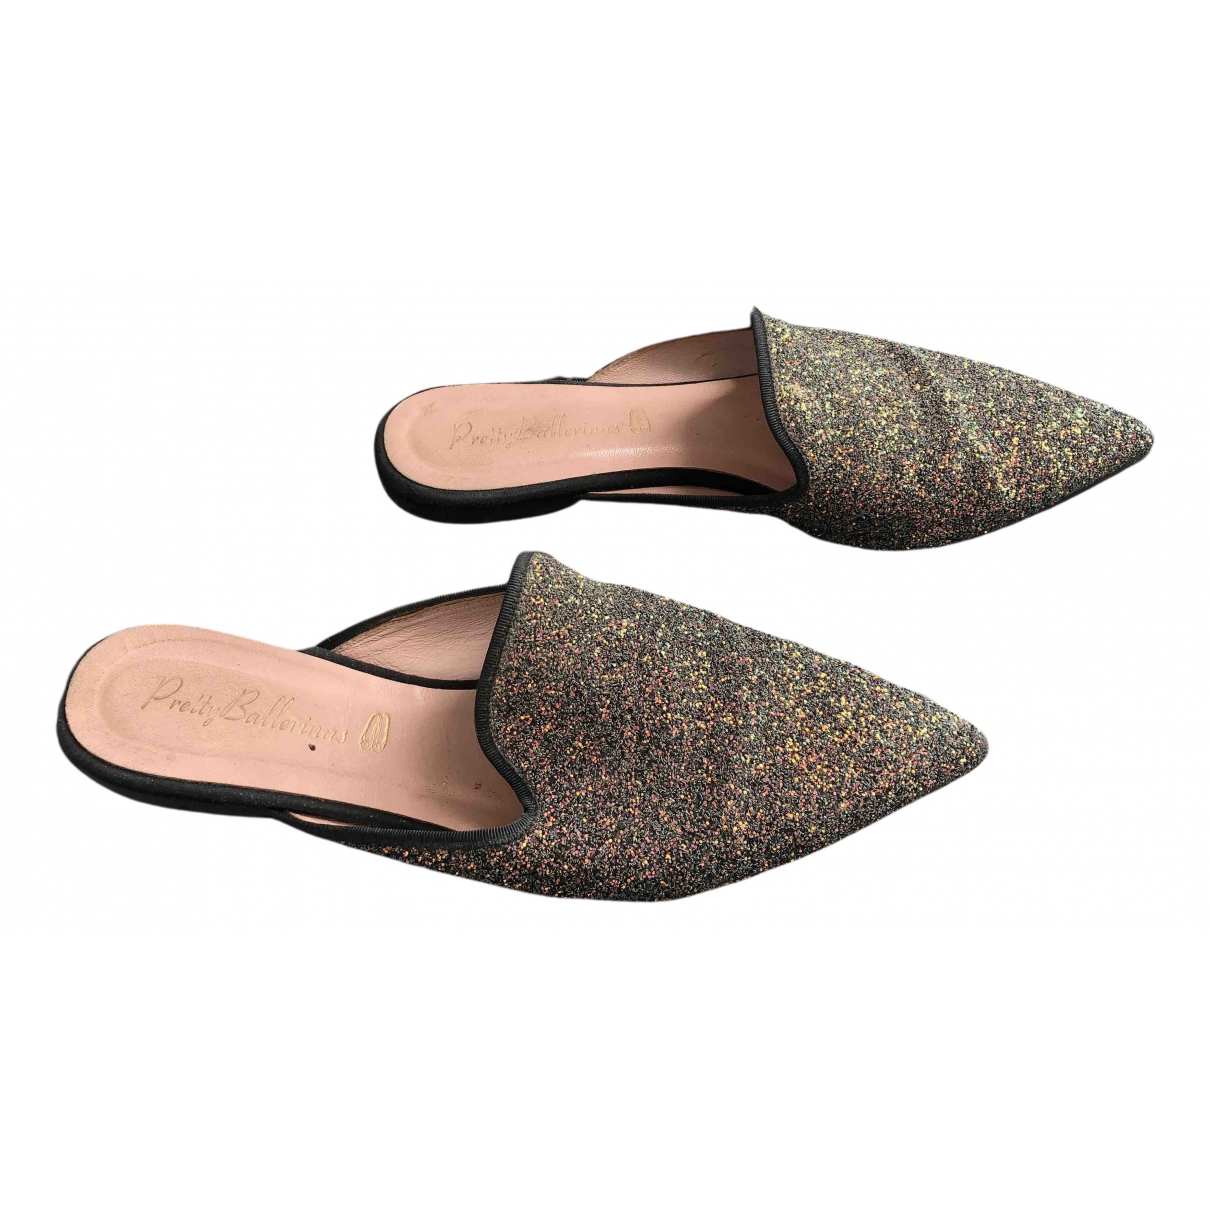 Pretty Ballerinas N Black Glitter Mules & Clogs for Women 39 IT